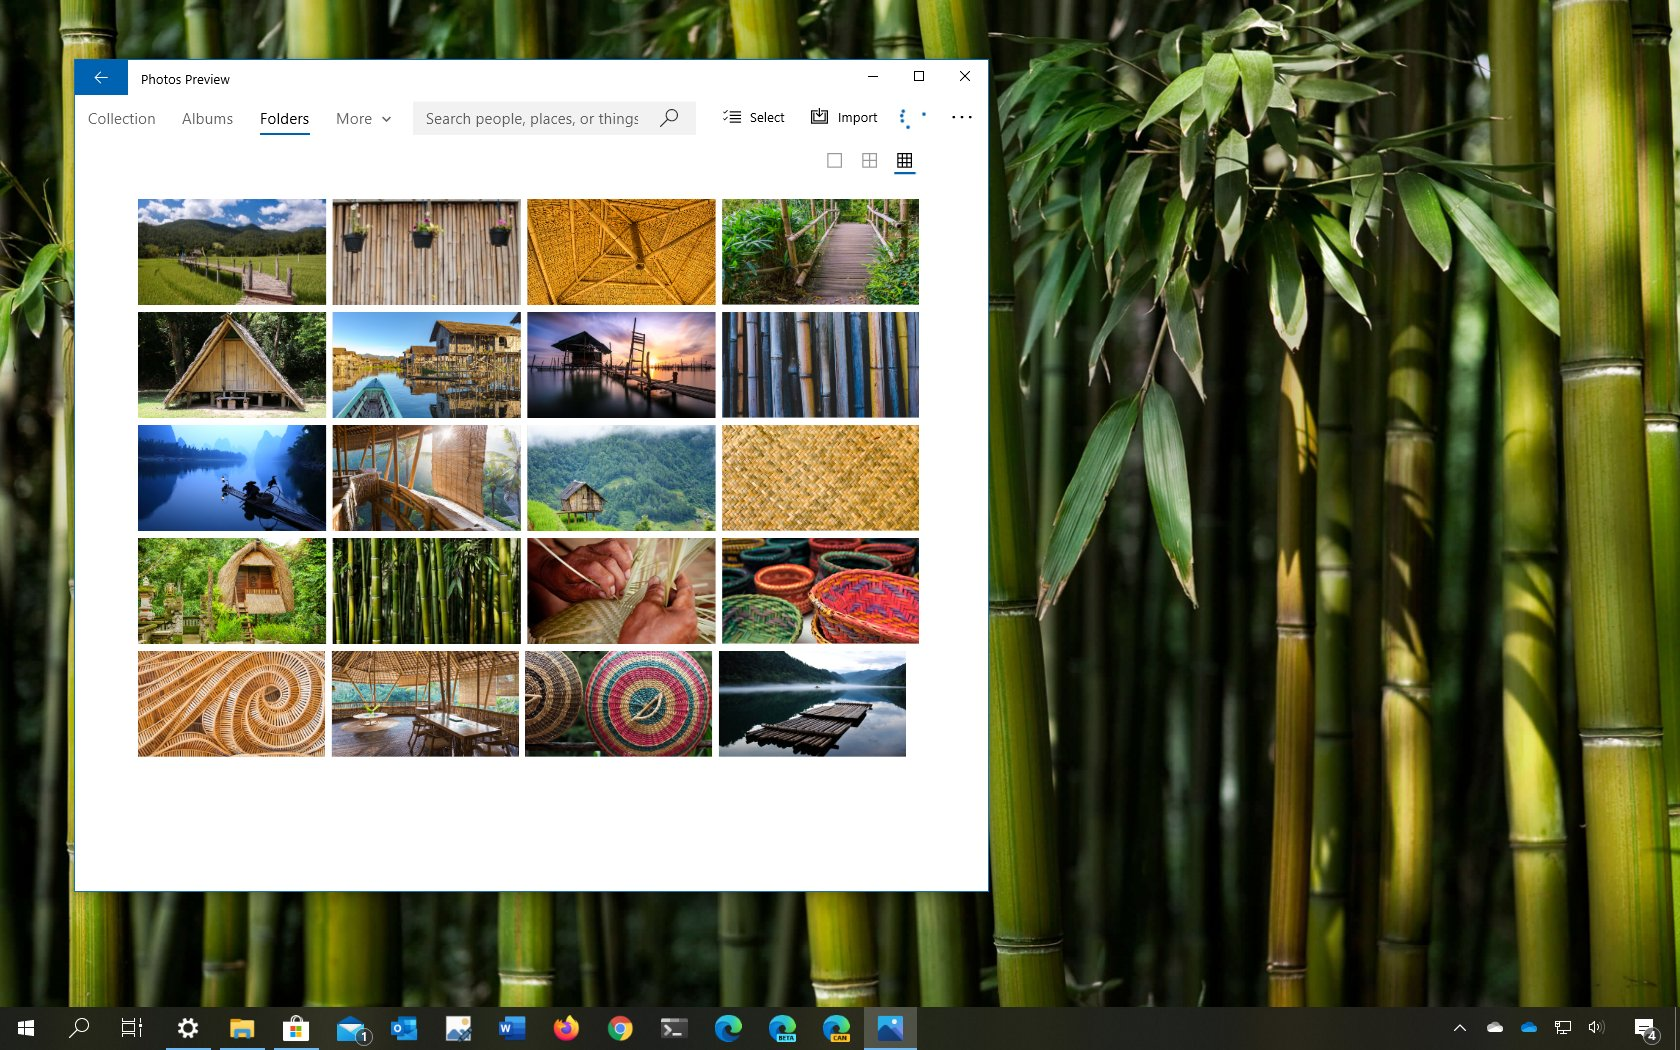 World of Bamboo theme for Windows 10